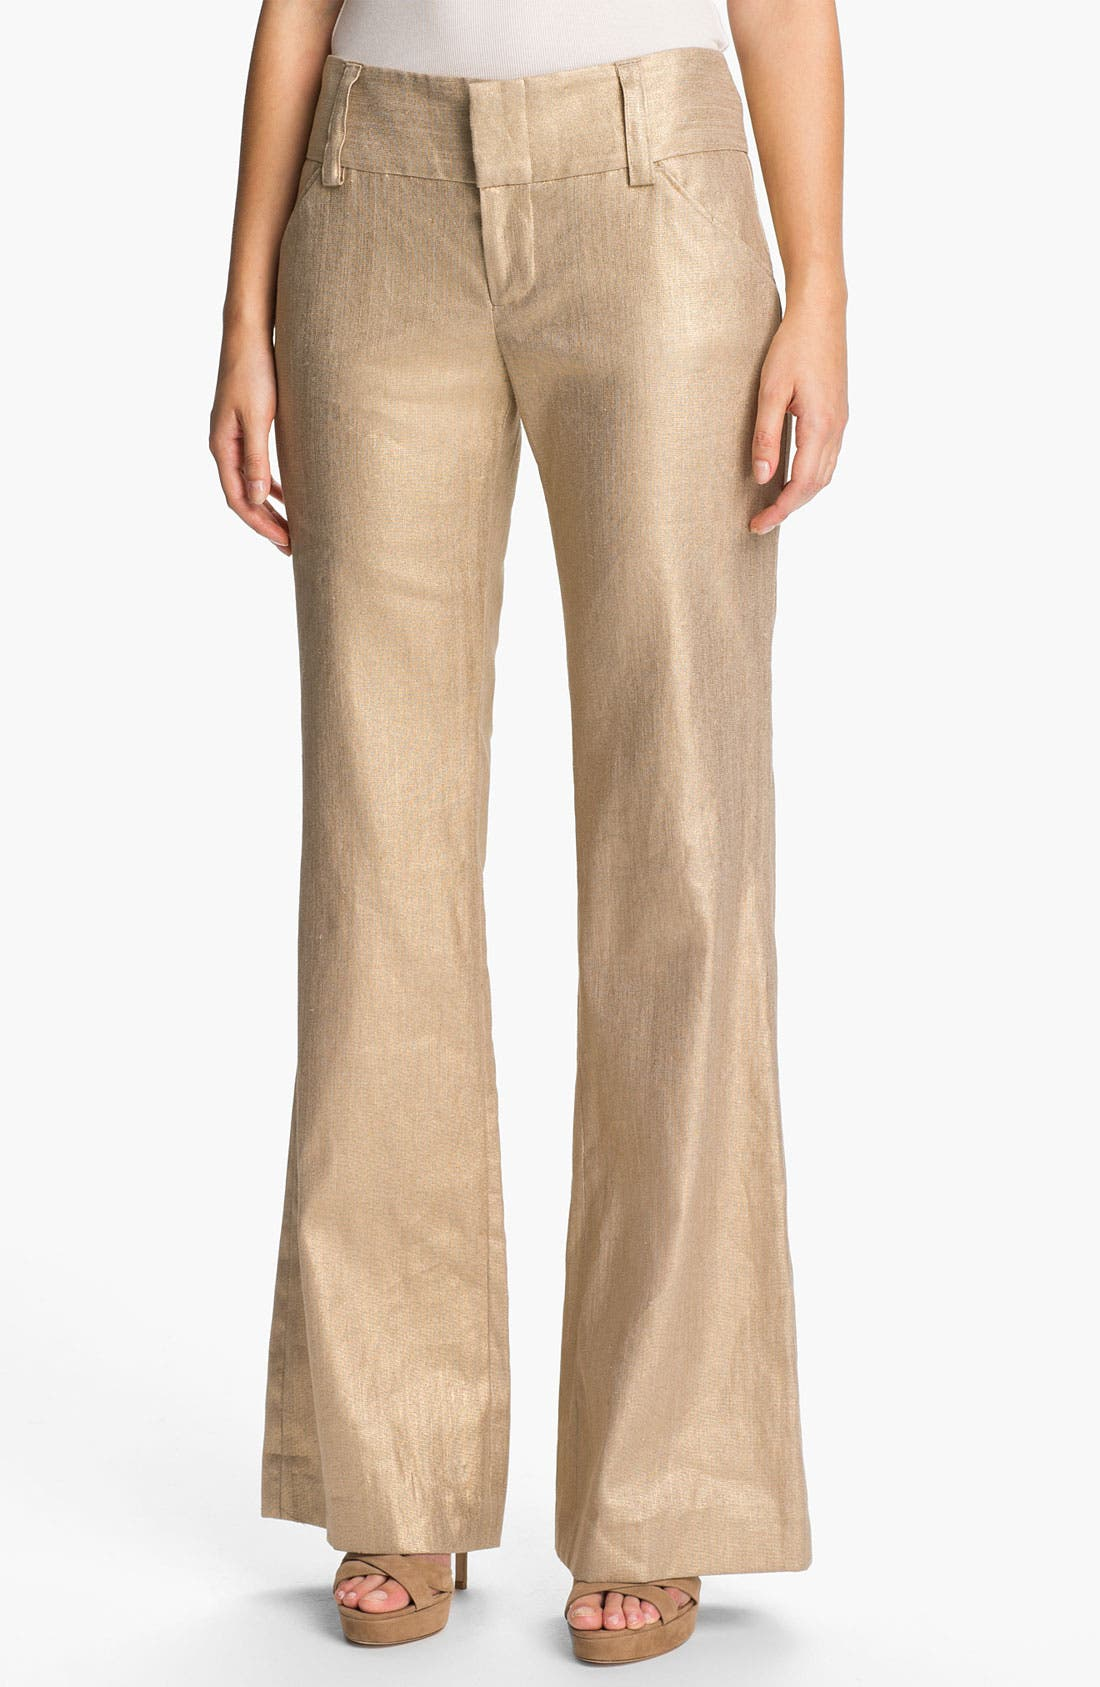 Alternate Image 1 Selected - Alice + Olivia 'Olivia' Wide Leg Stretch Pants